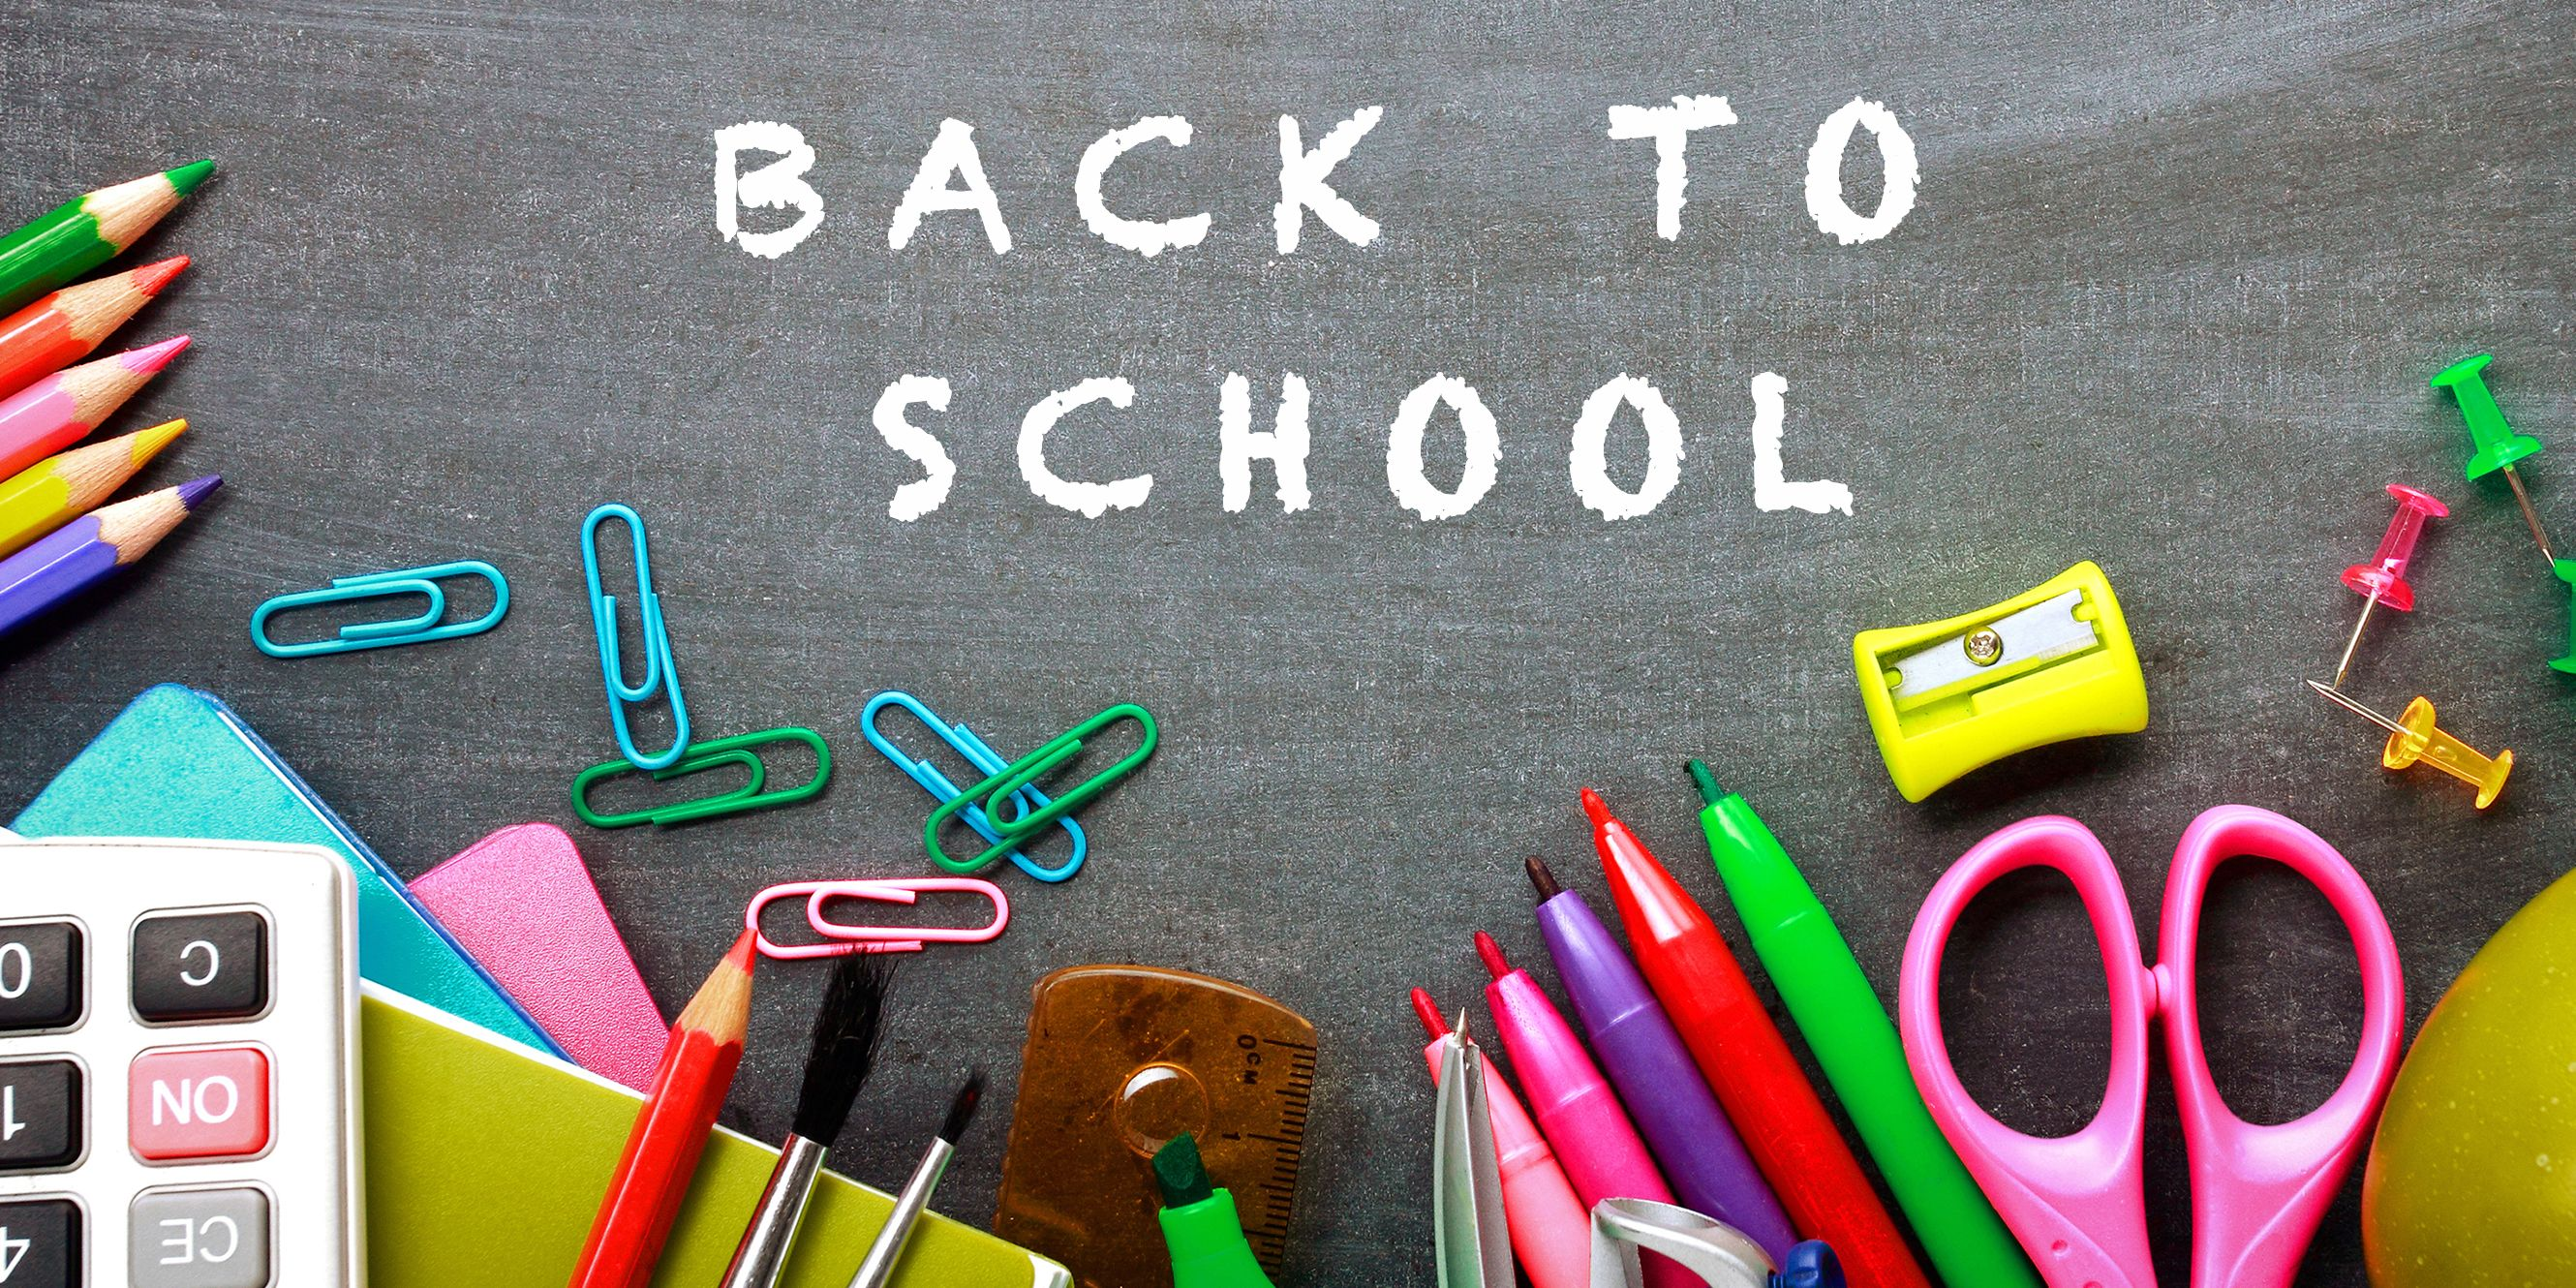 The start of the school year for most students throughout #Bakersfield and #KernCounty is a week away! Make it a safe #BacktoSchool. For safety tips, go to bloggingforjustice.com.